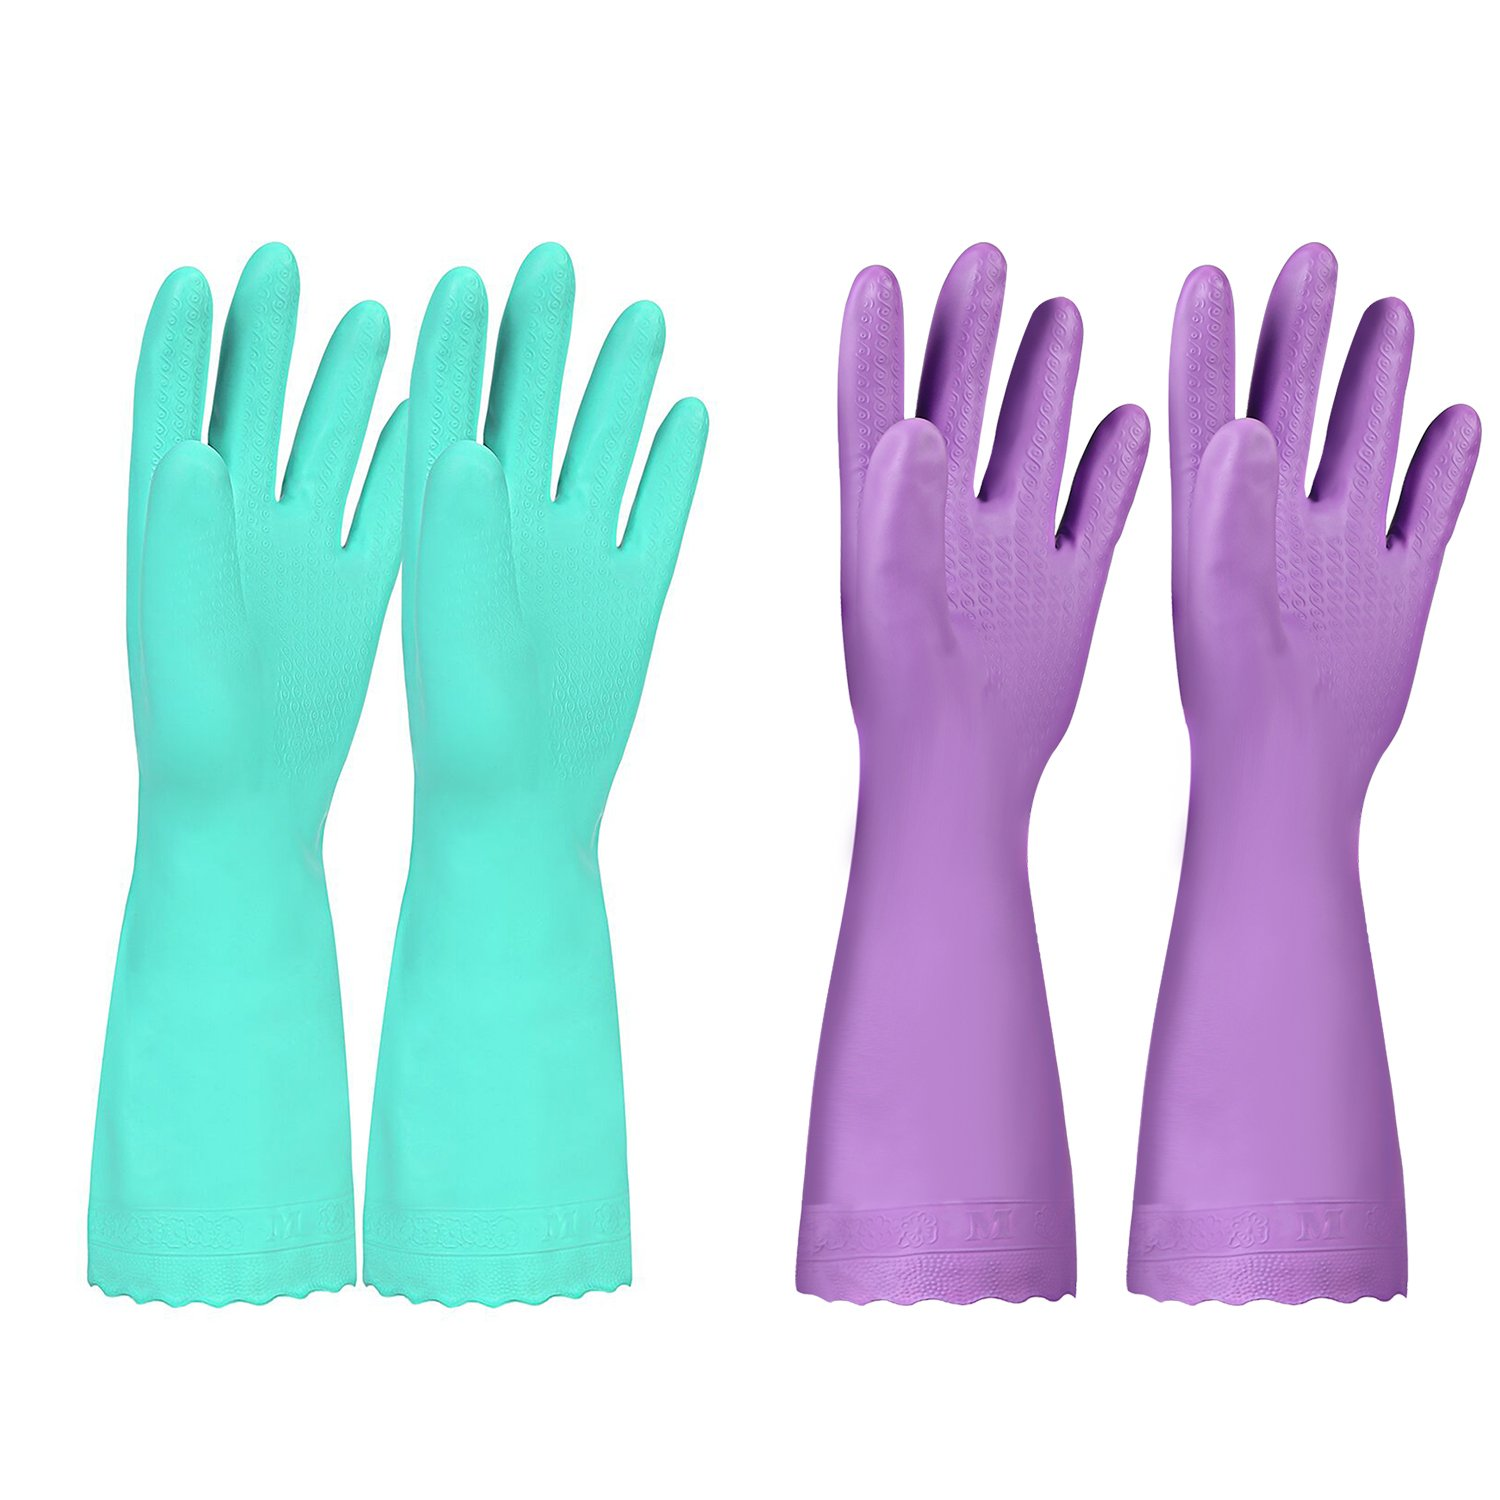 Elgood Household Gloves,Latex Free Vinyl Cotton Lining Non- Slip Swirl Grip Gloves for Kithen Dishwashing Laundry Cleaning 2 Pairs (Purple+Blue, M)